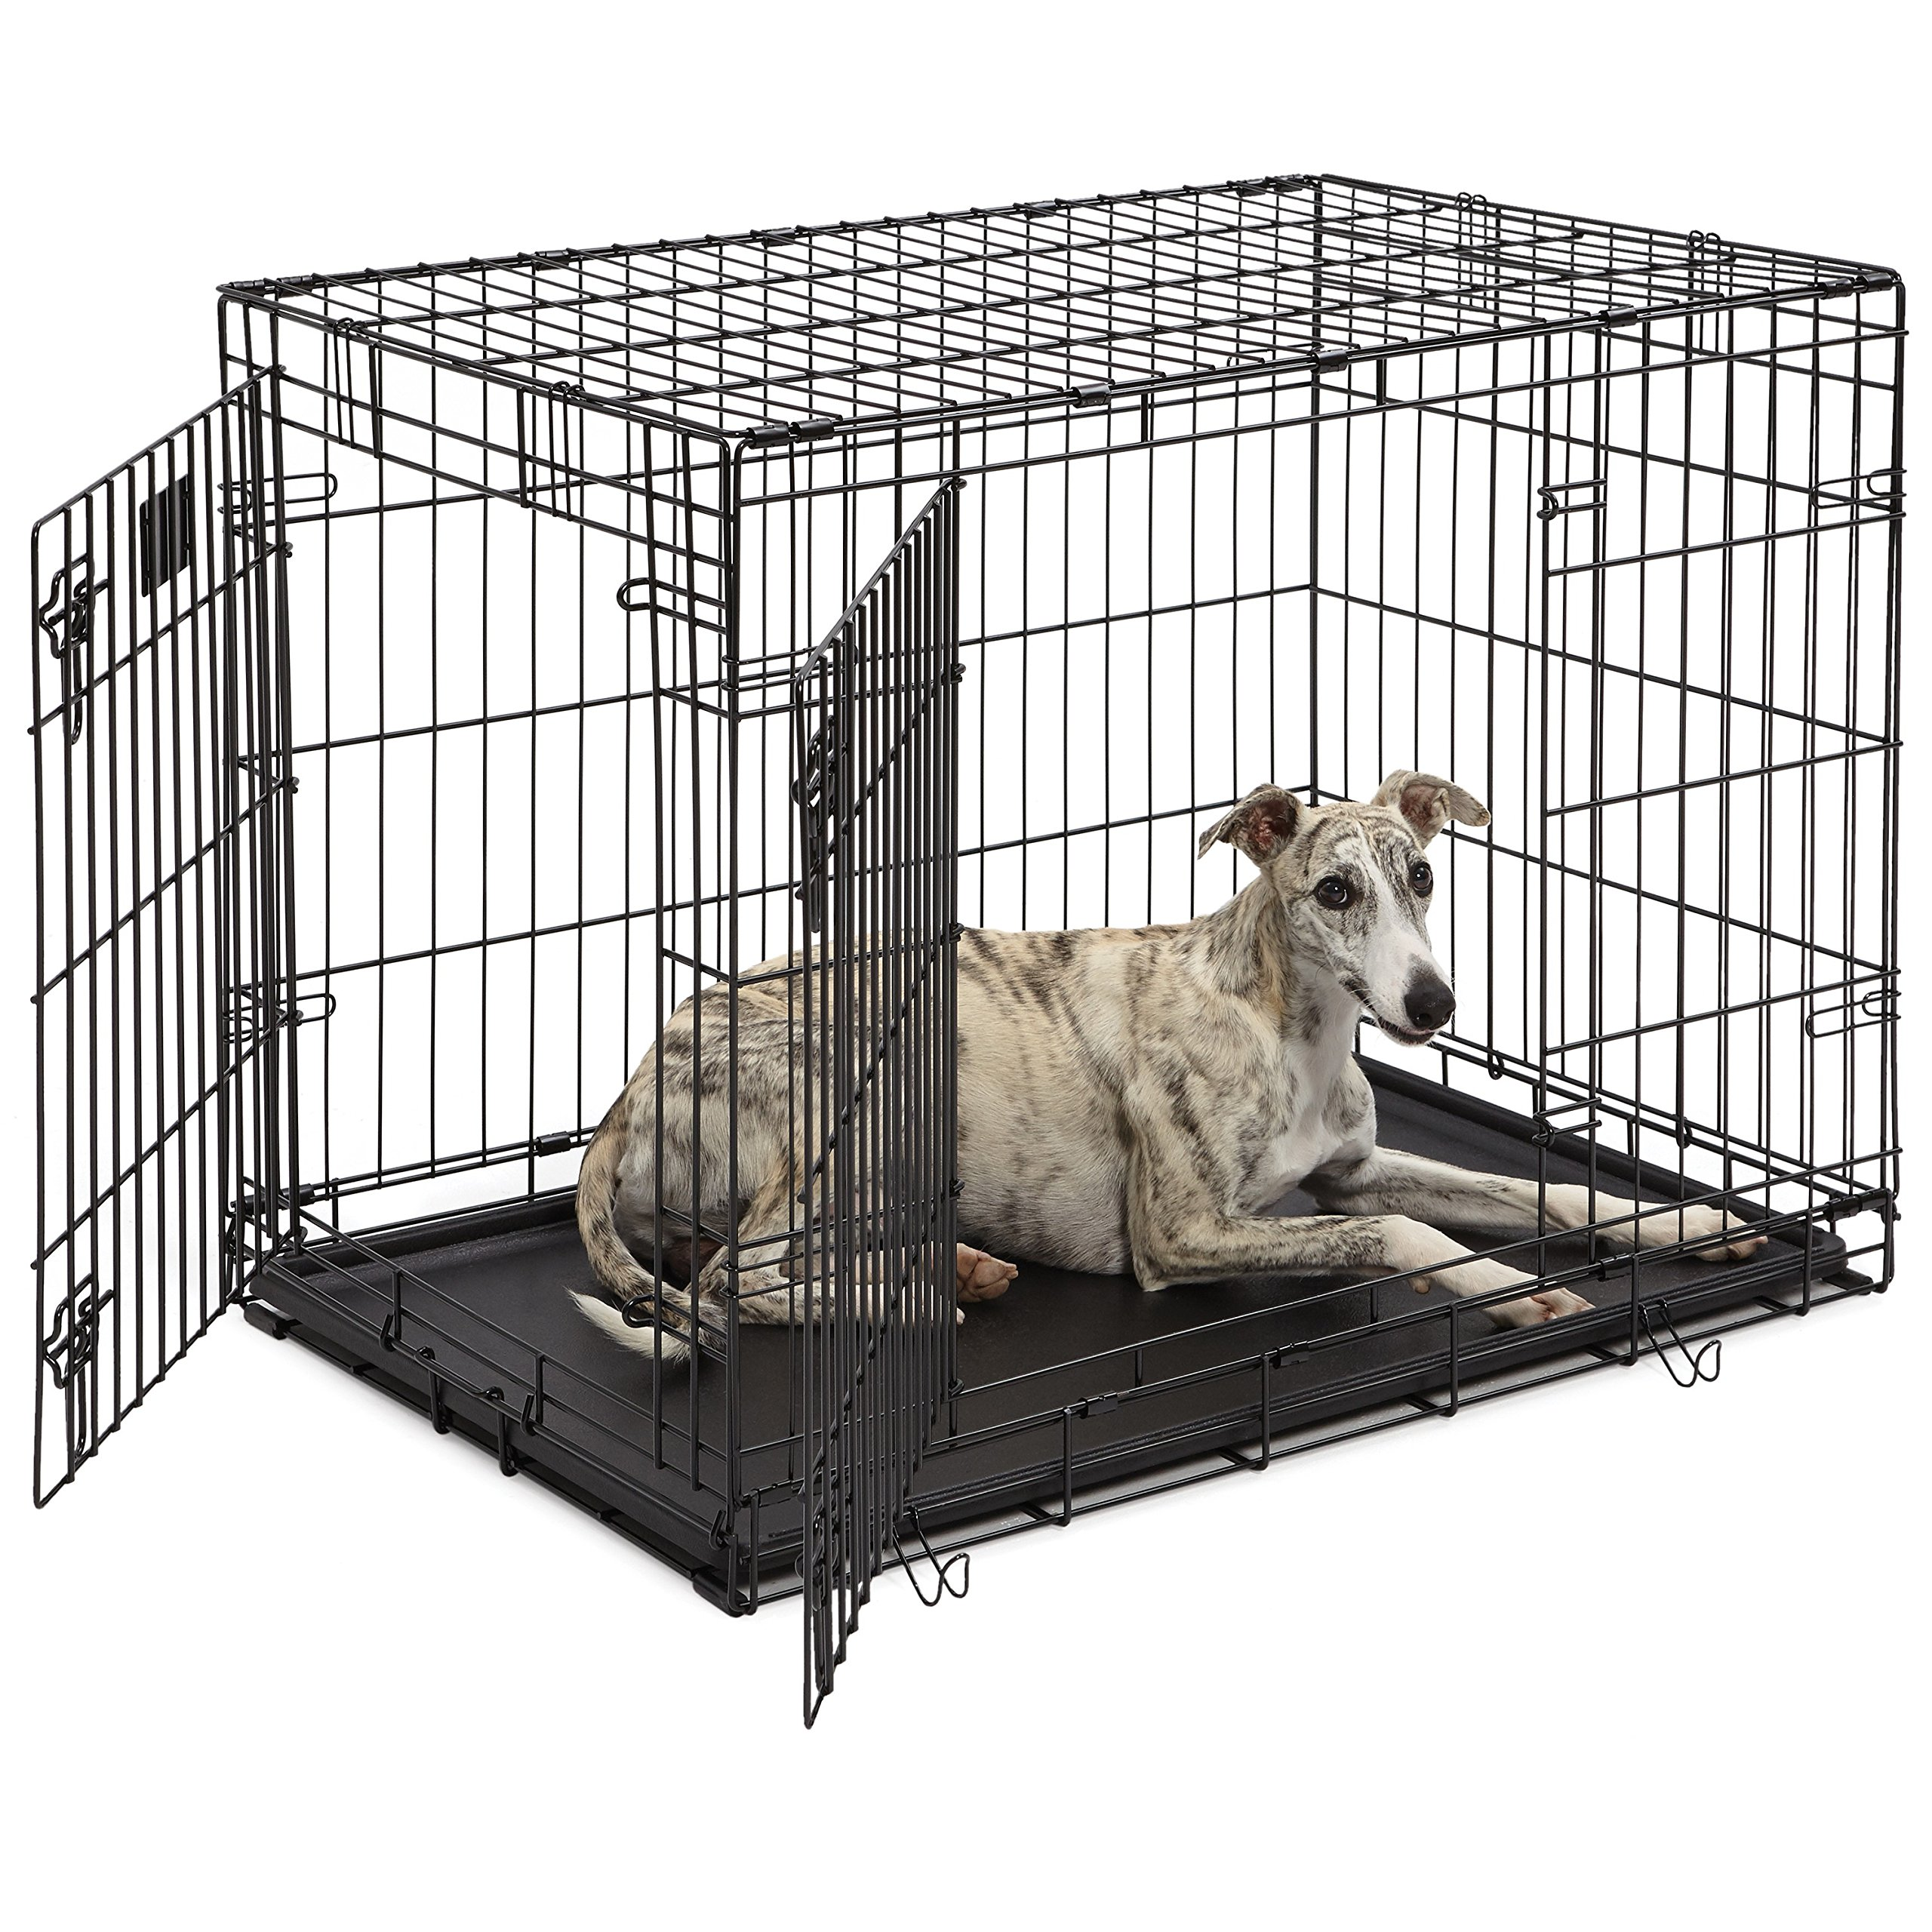 Dog Crate | MidWest Life Stages 36'' Double Door Folding Metal Dog Crate | Divider Panel, Floor Protecting Feet, Leak-Proof Dog Tray | 36L x 24W x 27H Inches, Intermediate Dog Breed